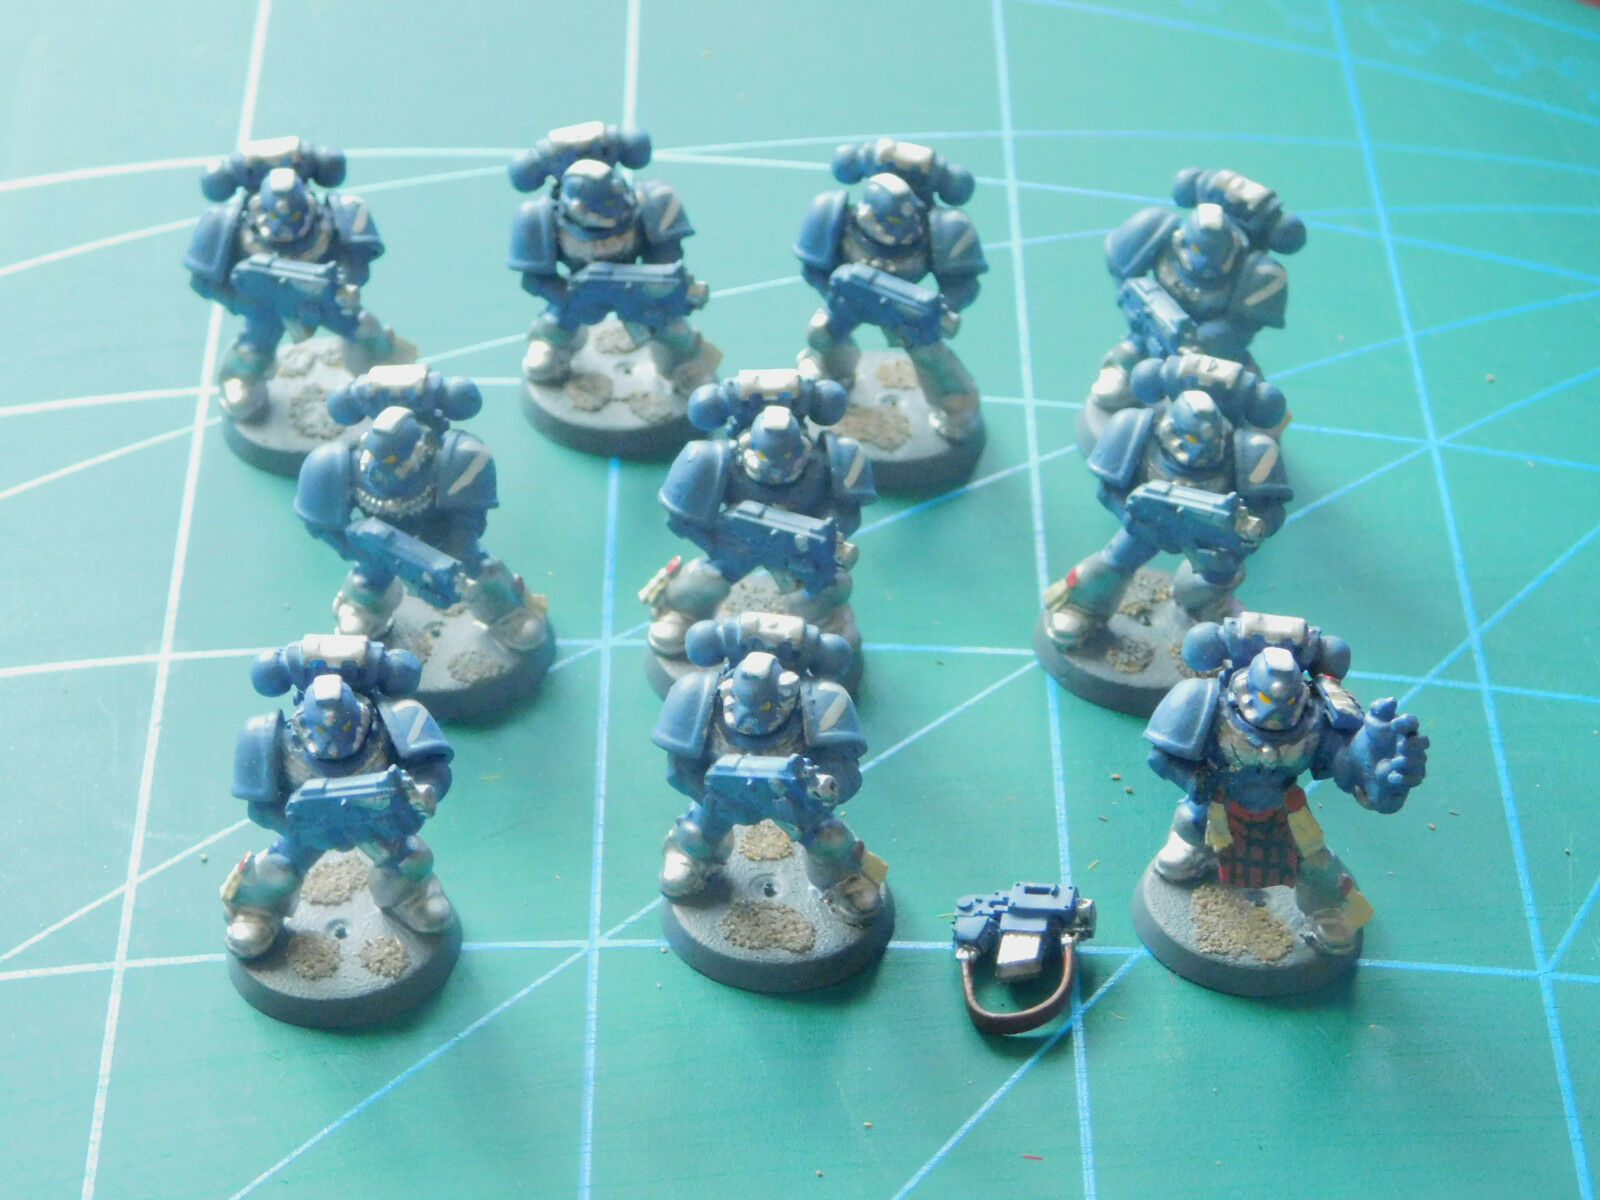 10 10 10 warhammer 40k dungeons dragons space marine painted plastic figures 52bd3a